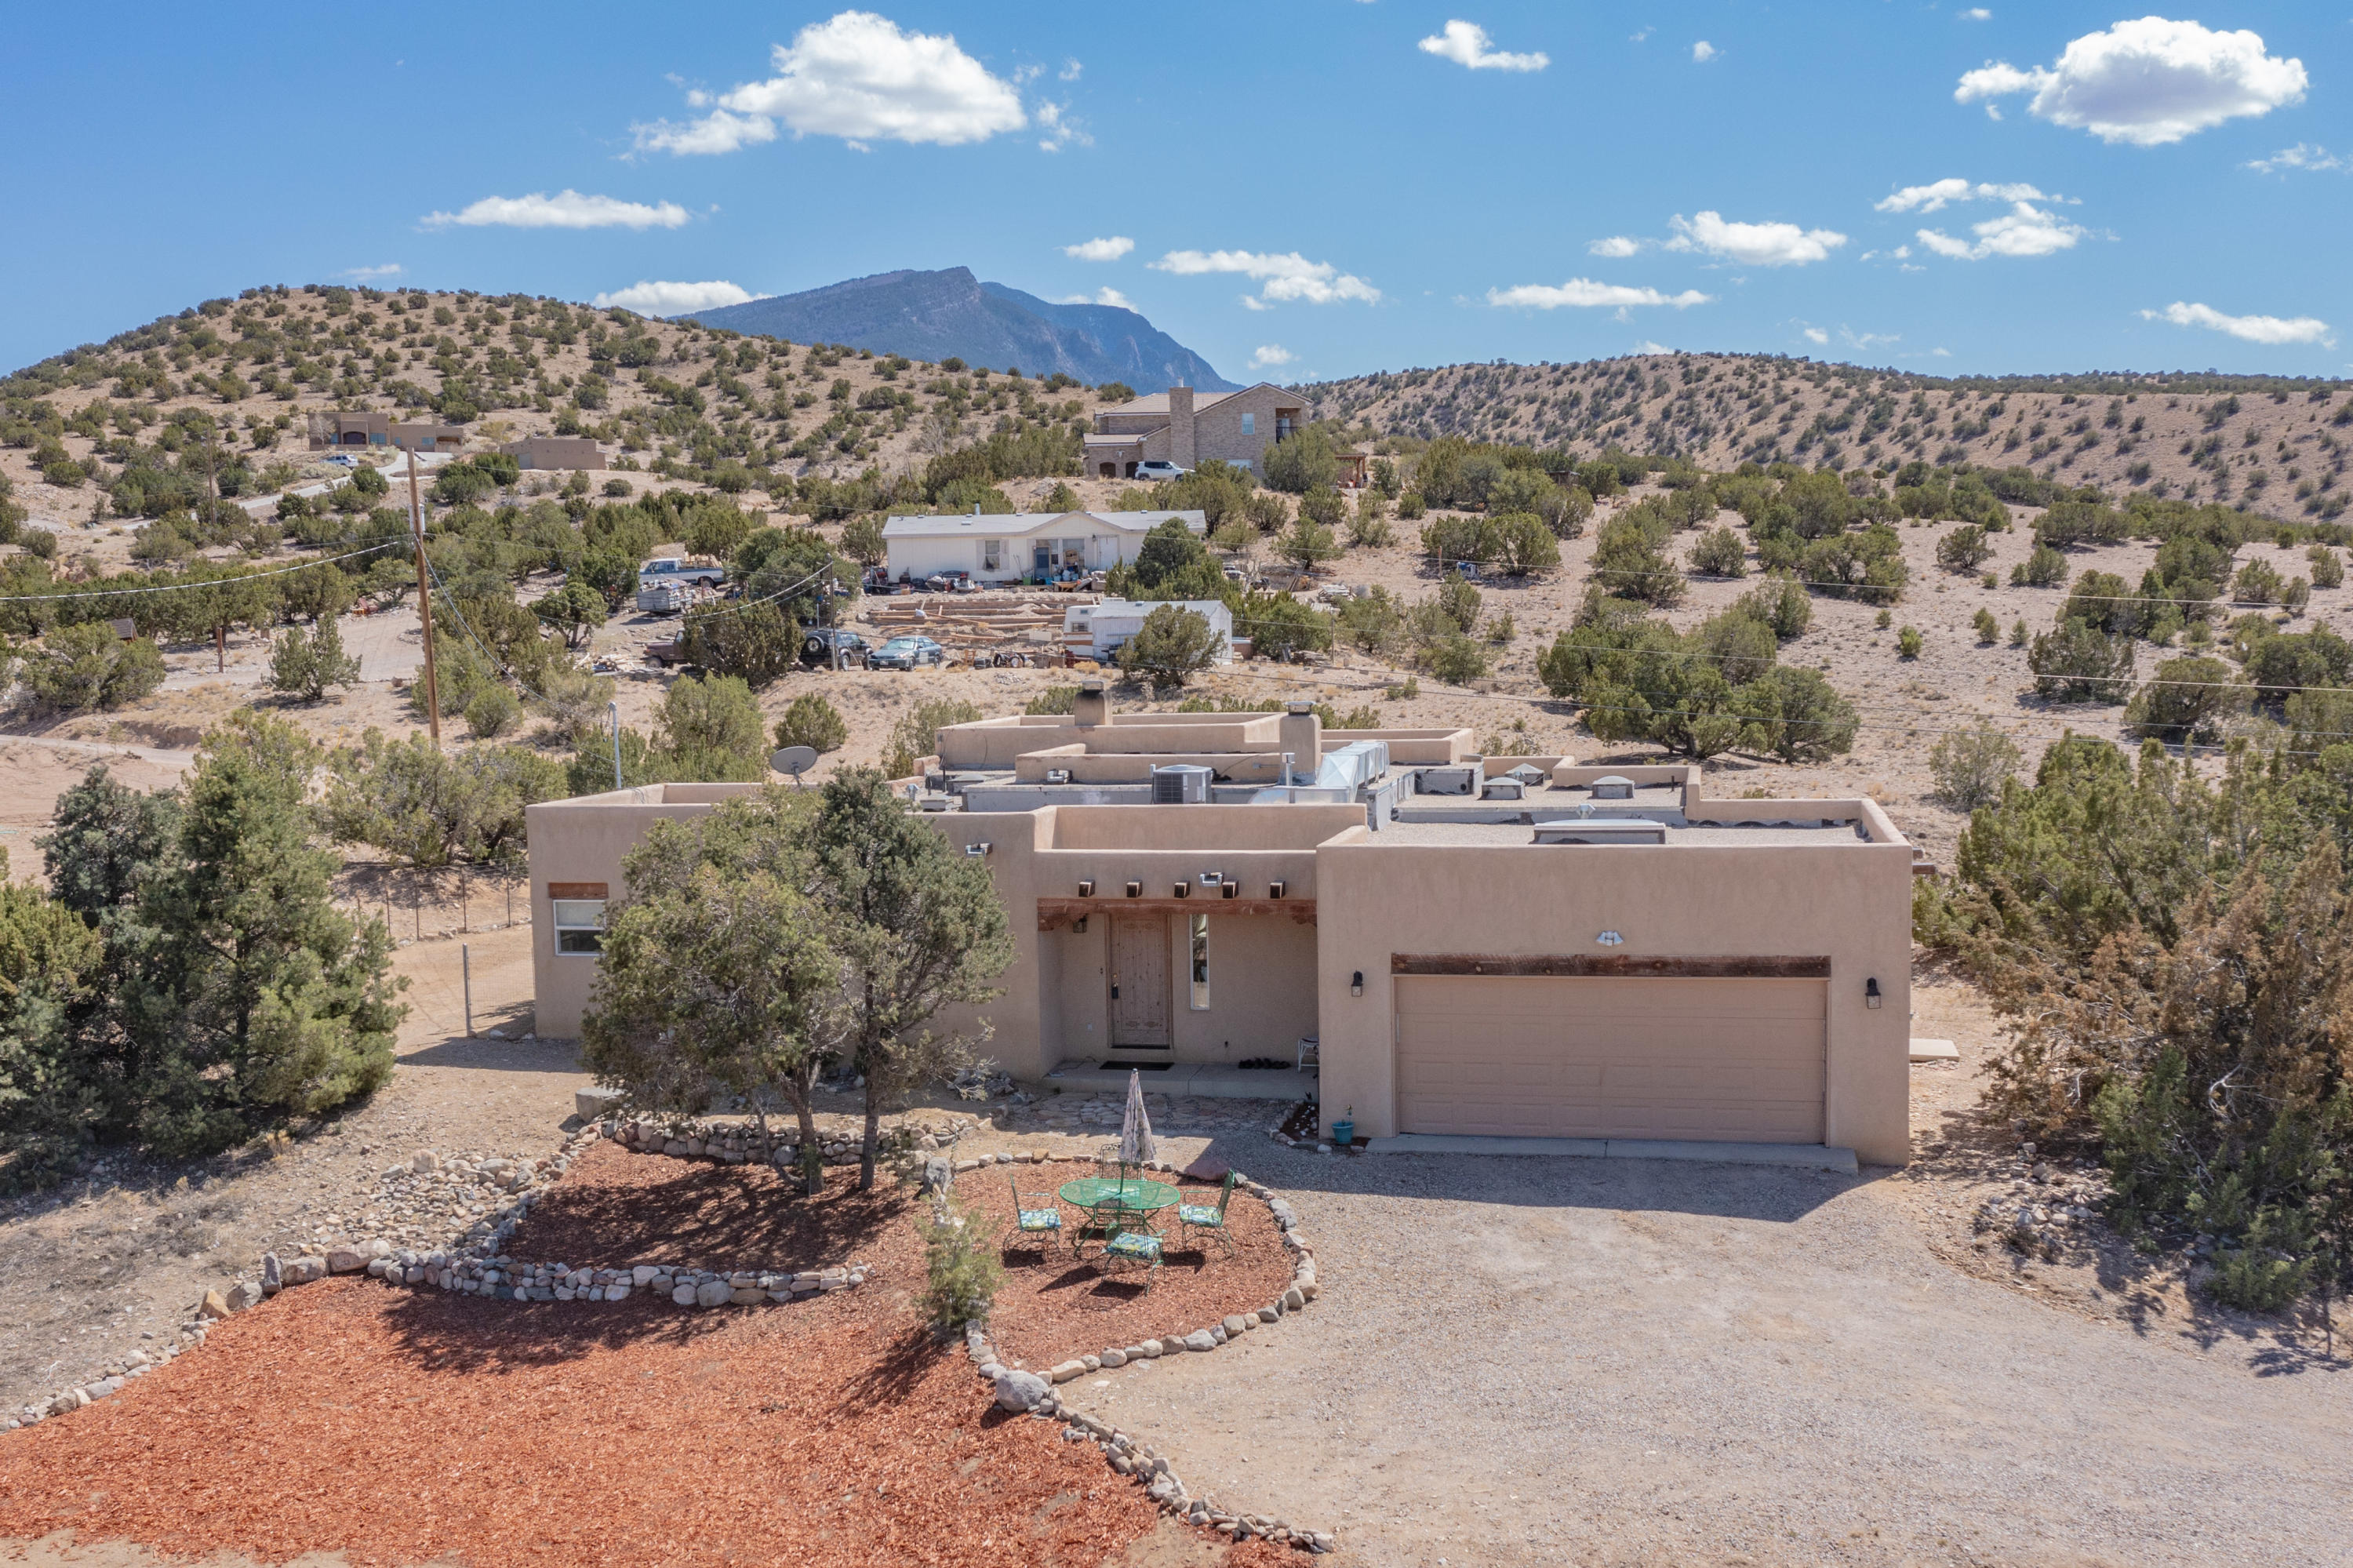 This beautiful custom Southwestern style home on 1.29 acres offers privacy and amazing views in the wide open Placitas high desert! With ample natural light from the large windows and skylights, raised wood ceilings, 2 kiva fireplaces, adobe accent walls, and large rooms this spacious home is a true New Mexican gem! So many lovely private outside places to enjoy the breath-taking sunsets and clear night skies, plus a fenced backyard. Open-concept floorpan includes a grand foyer, large kitchen, 2 large bedrooms, office off the 2nd living room, large bathroom with garden tub and tile shower, laundry room with extra storage. New house well pressure tank, leased propane tank, septic tank. Tenant Occupied.